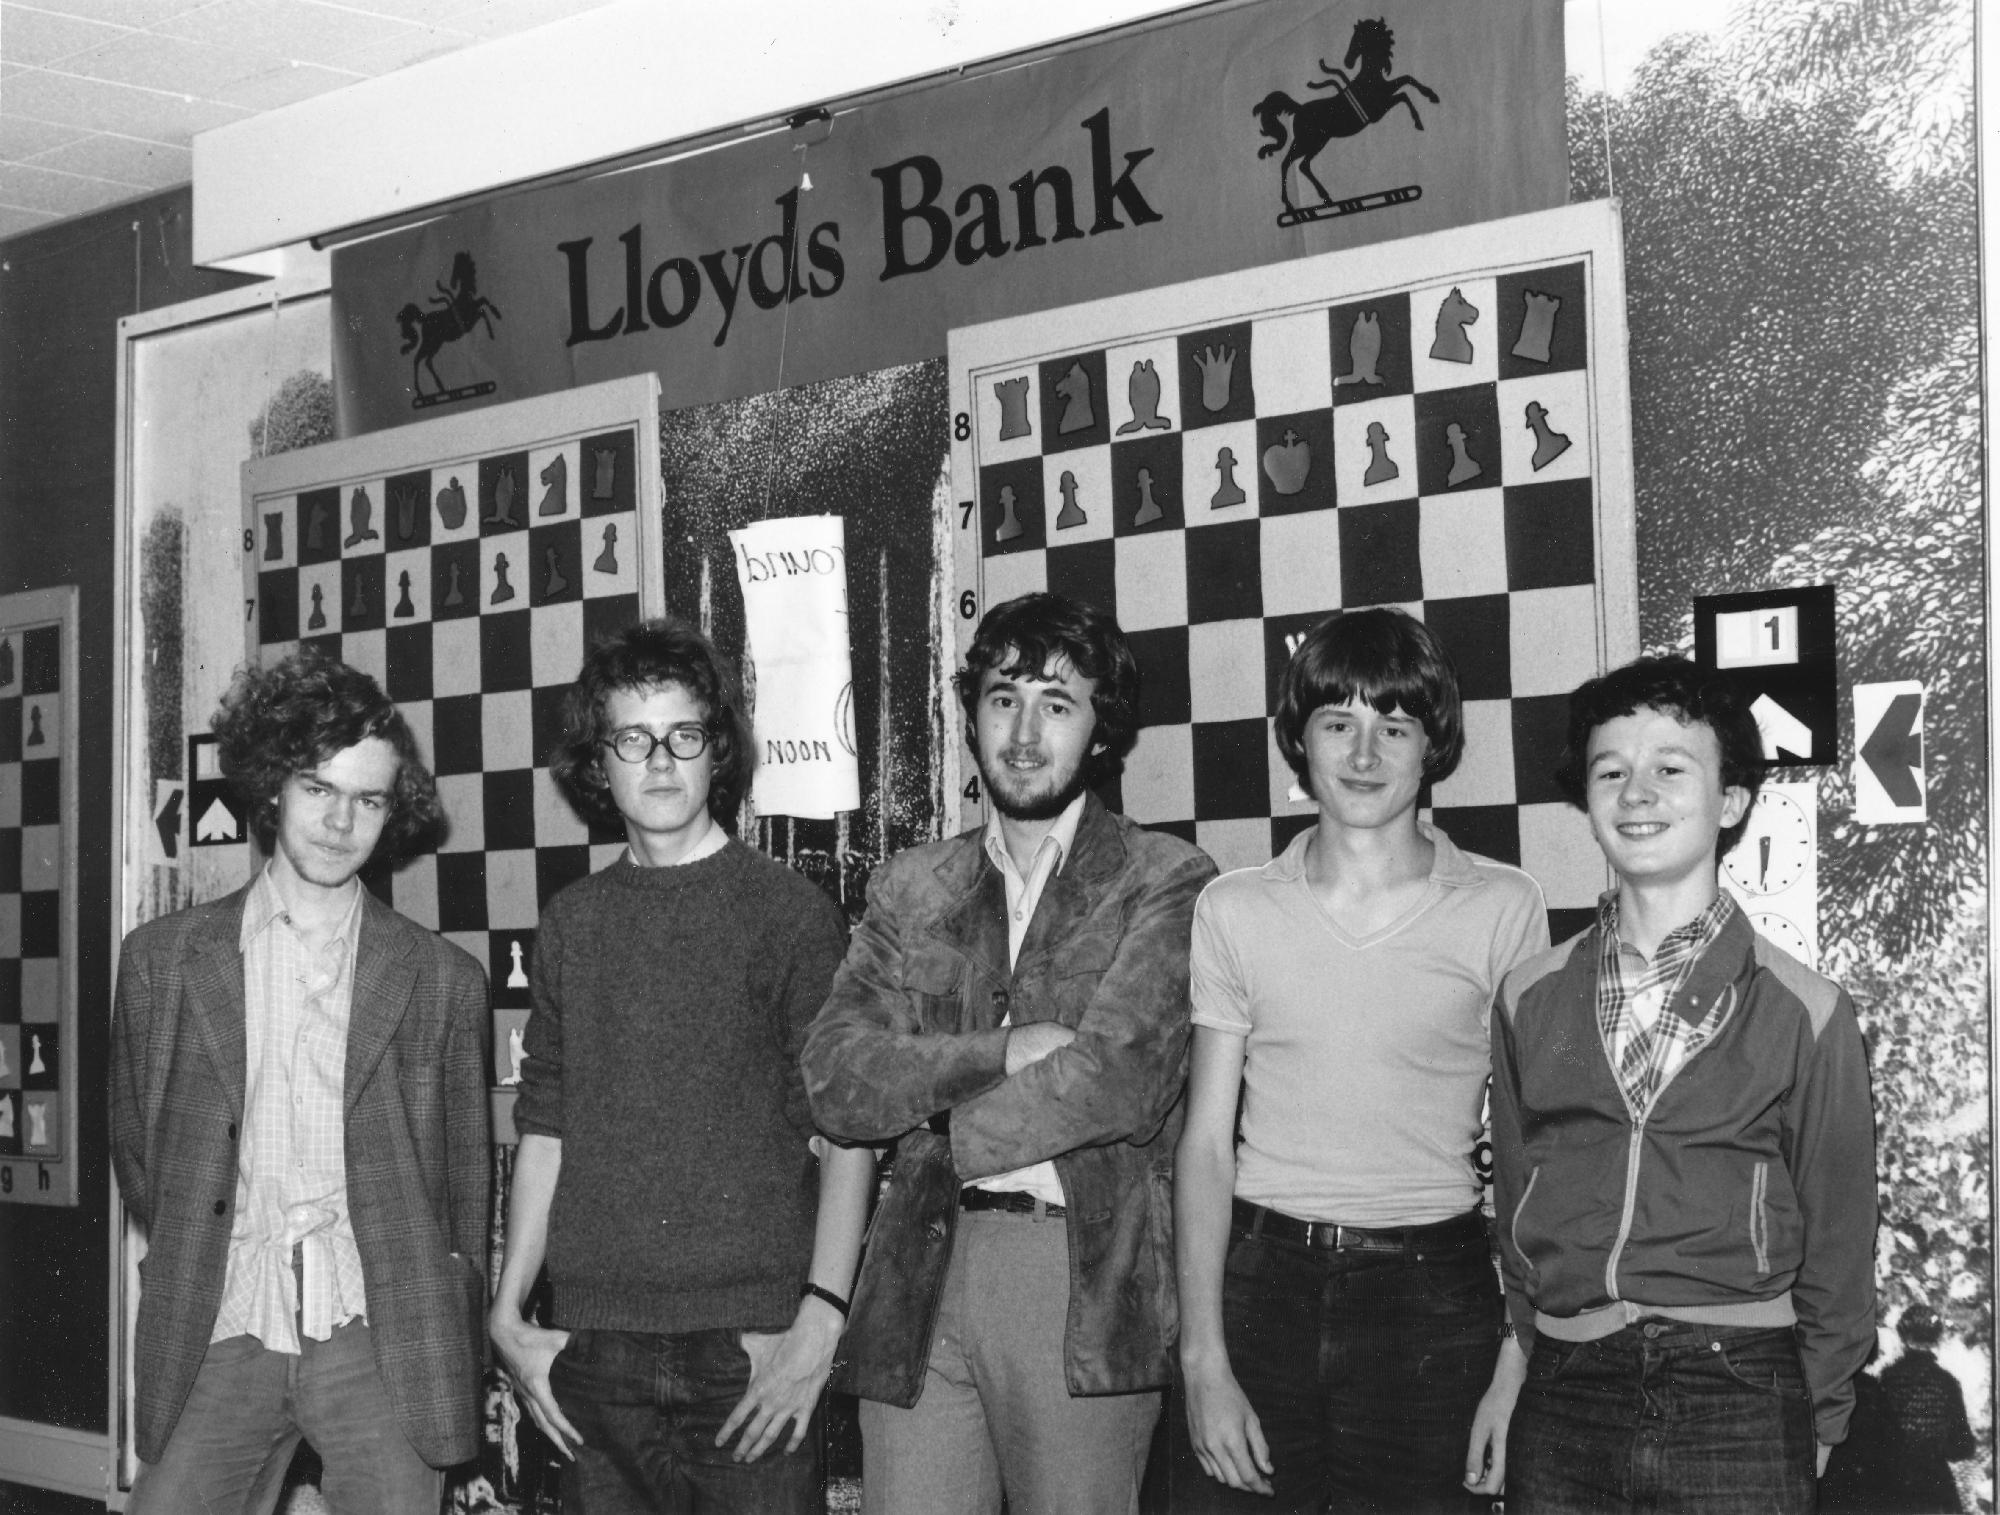 John Cox  (first from left) at a Lloyds Bank event.